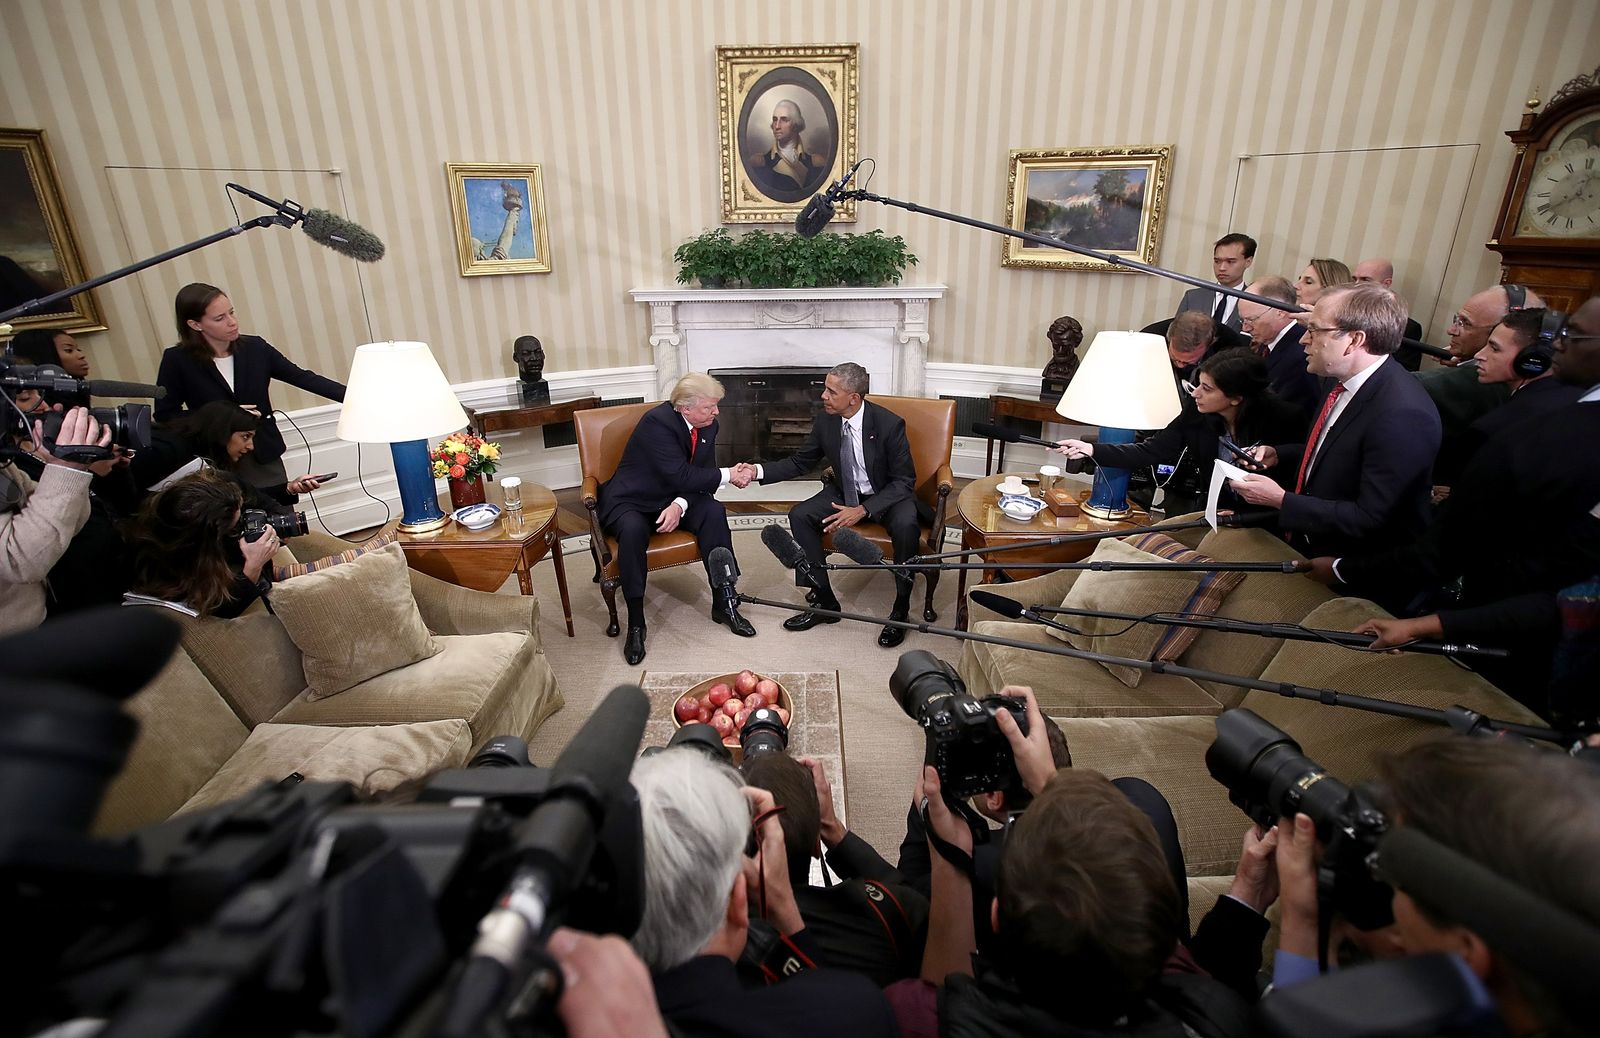 US-PRESIDENT-OBAMA-MEETS-WITH-PRESIDENT-ELECT-DONALD-TRUMP-IN-TH